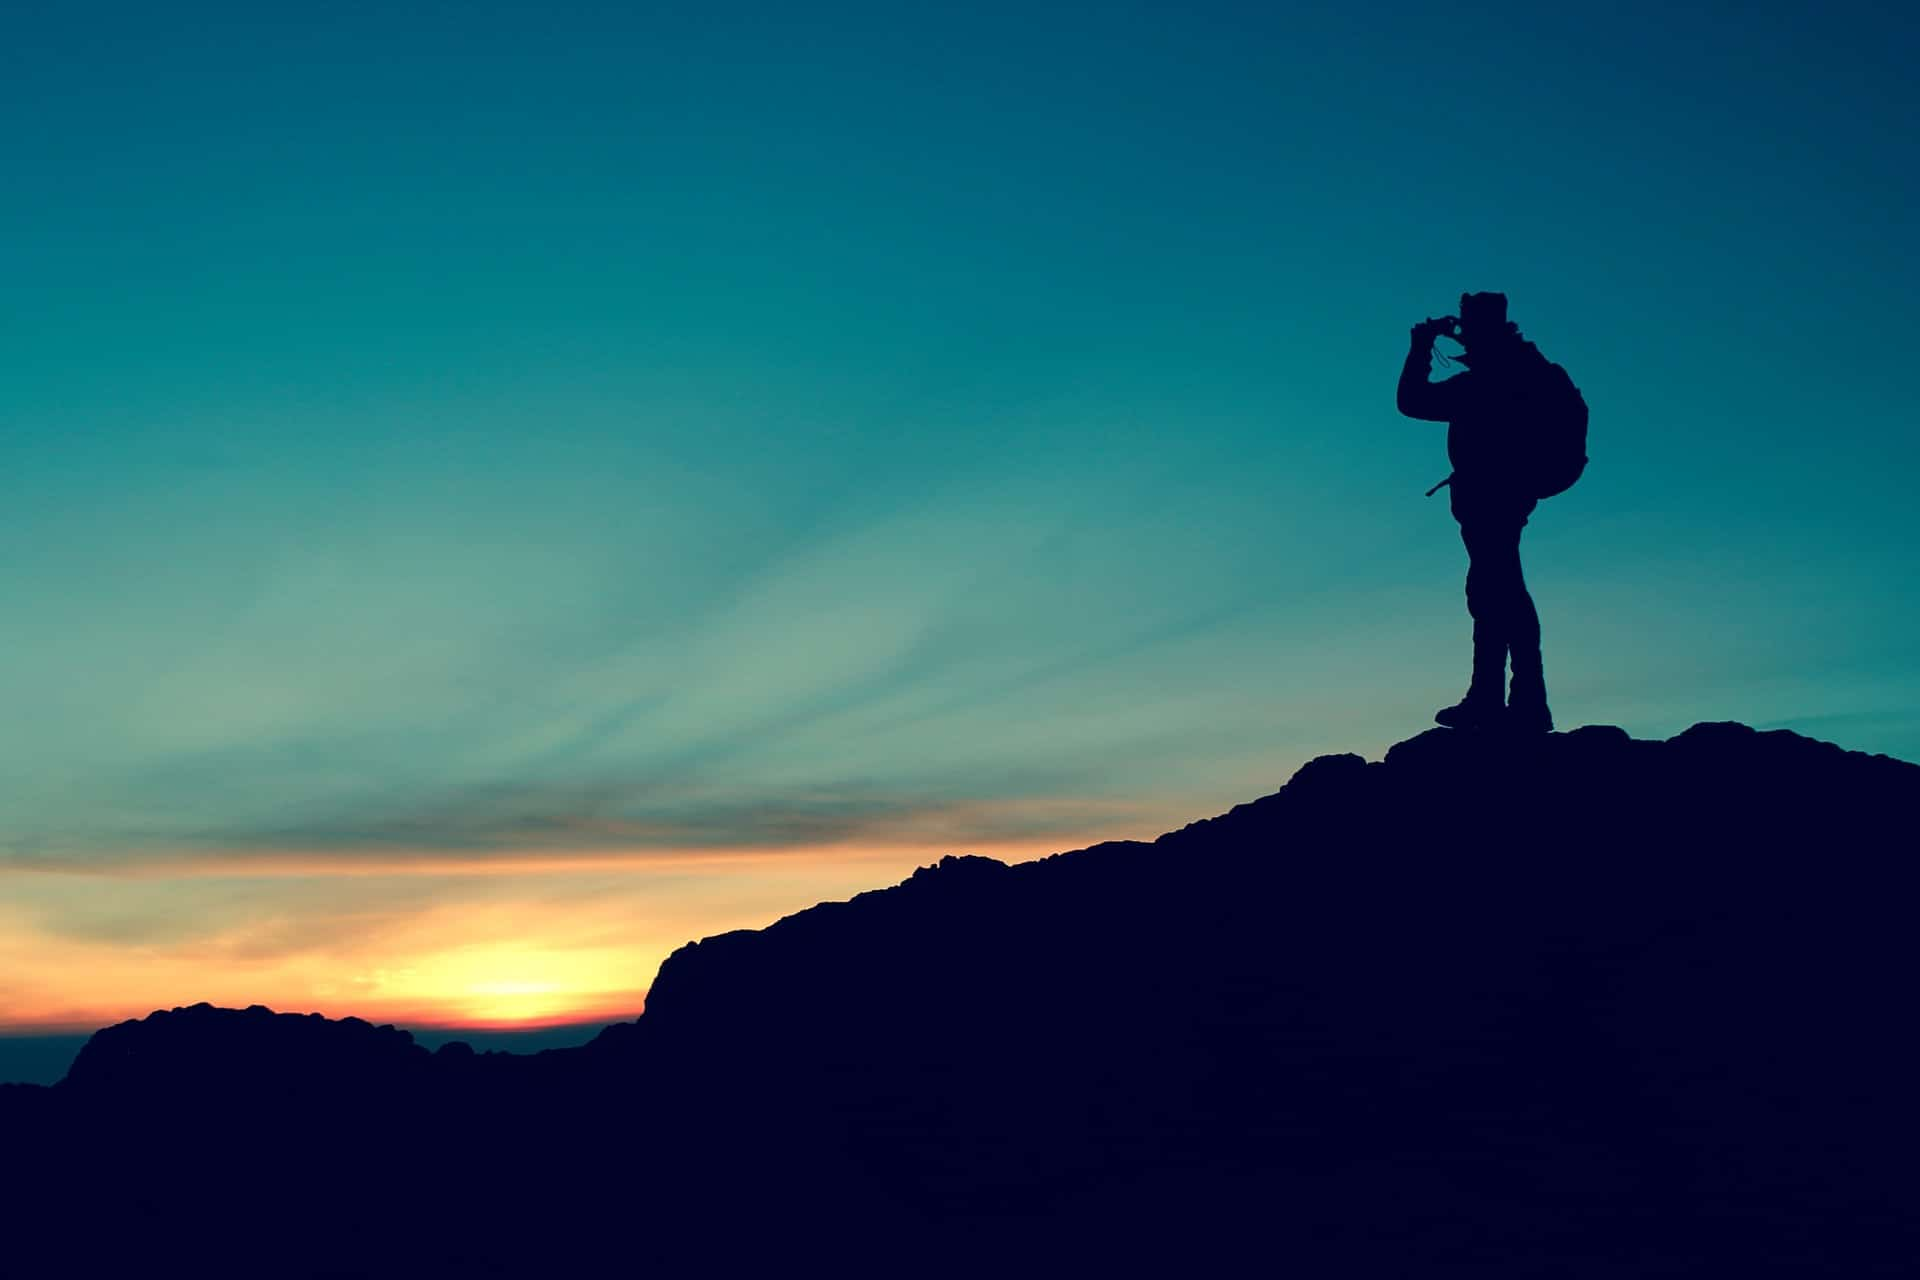 A man on top of mountain with binoculars on